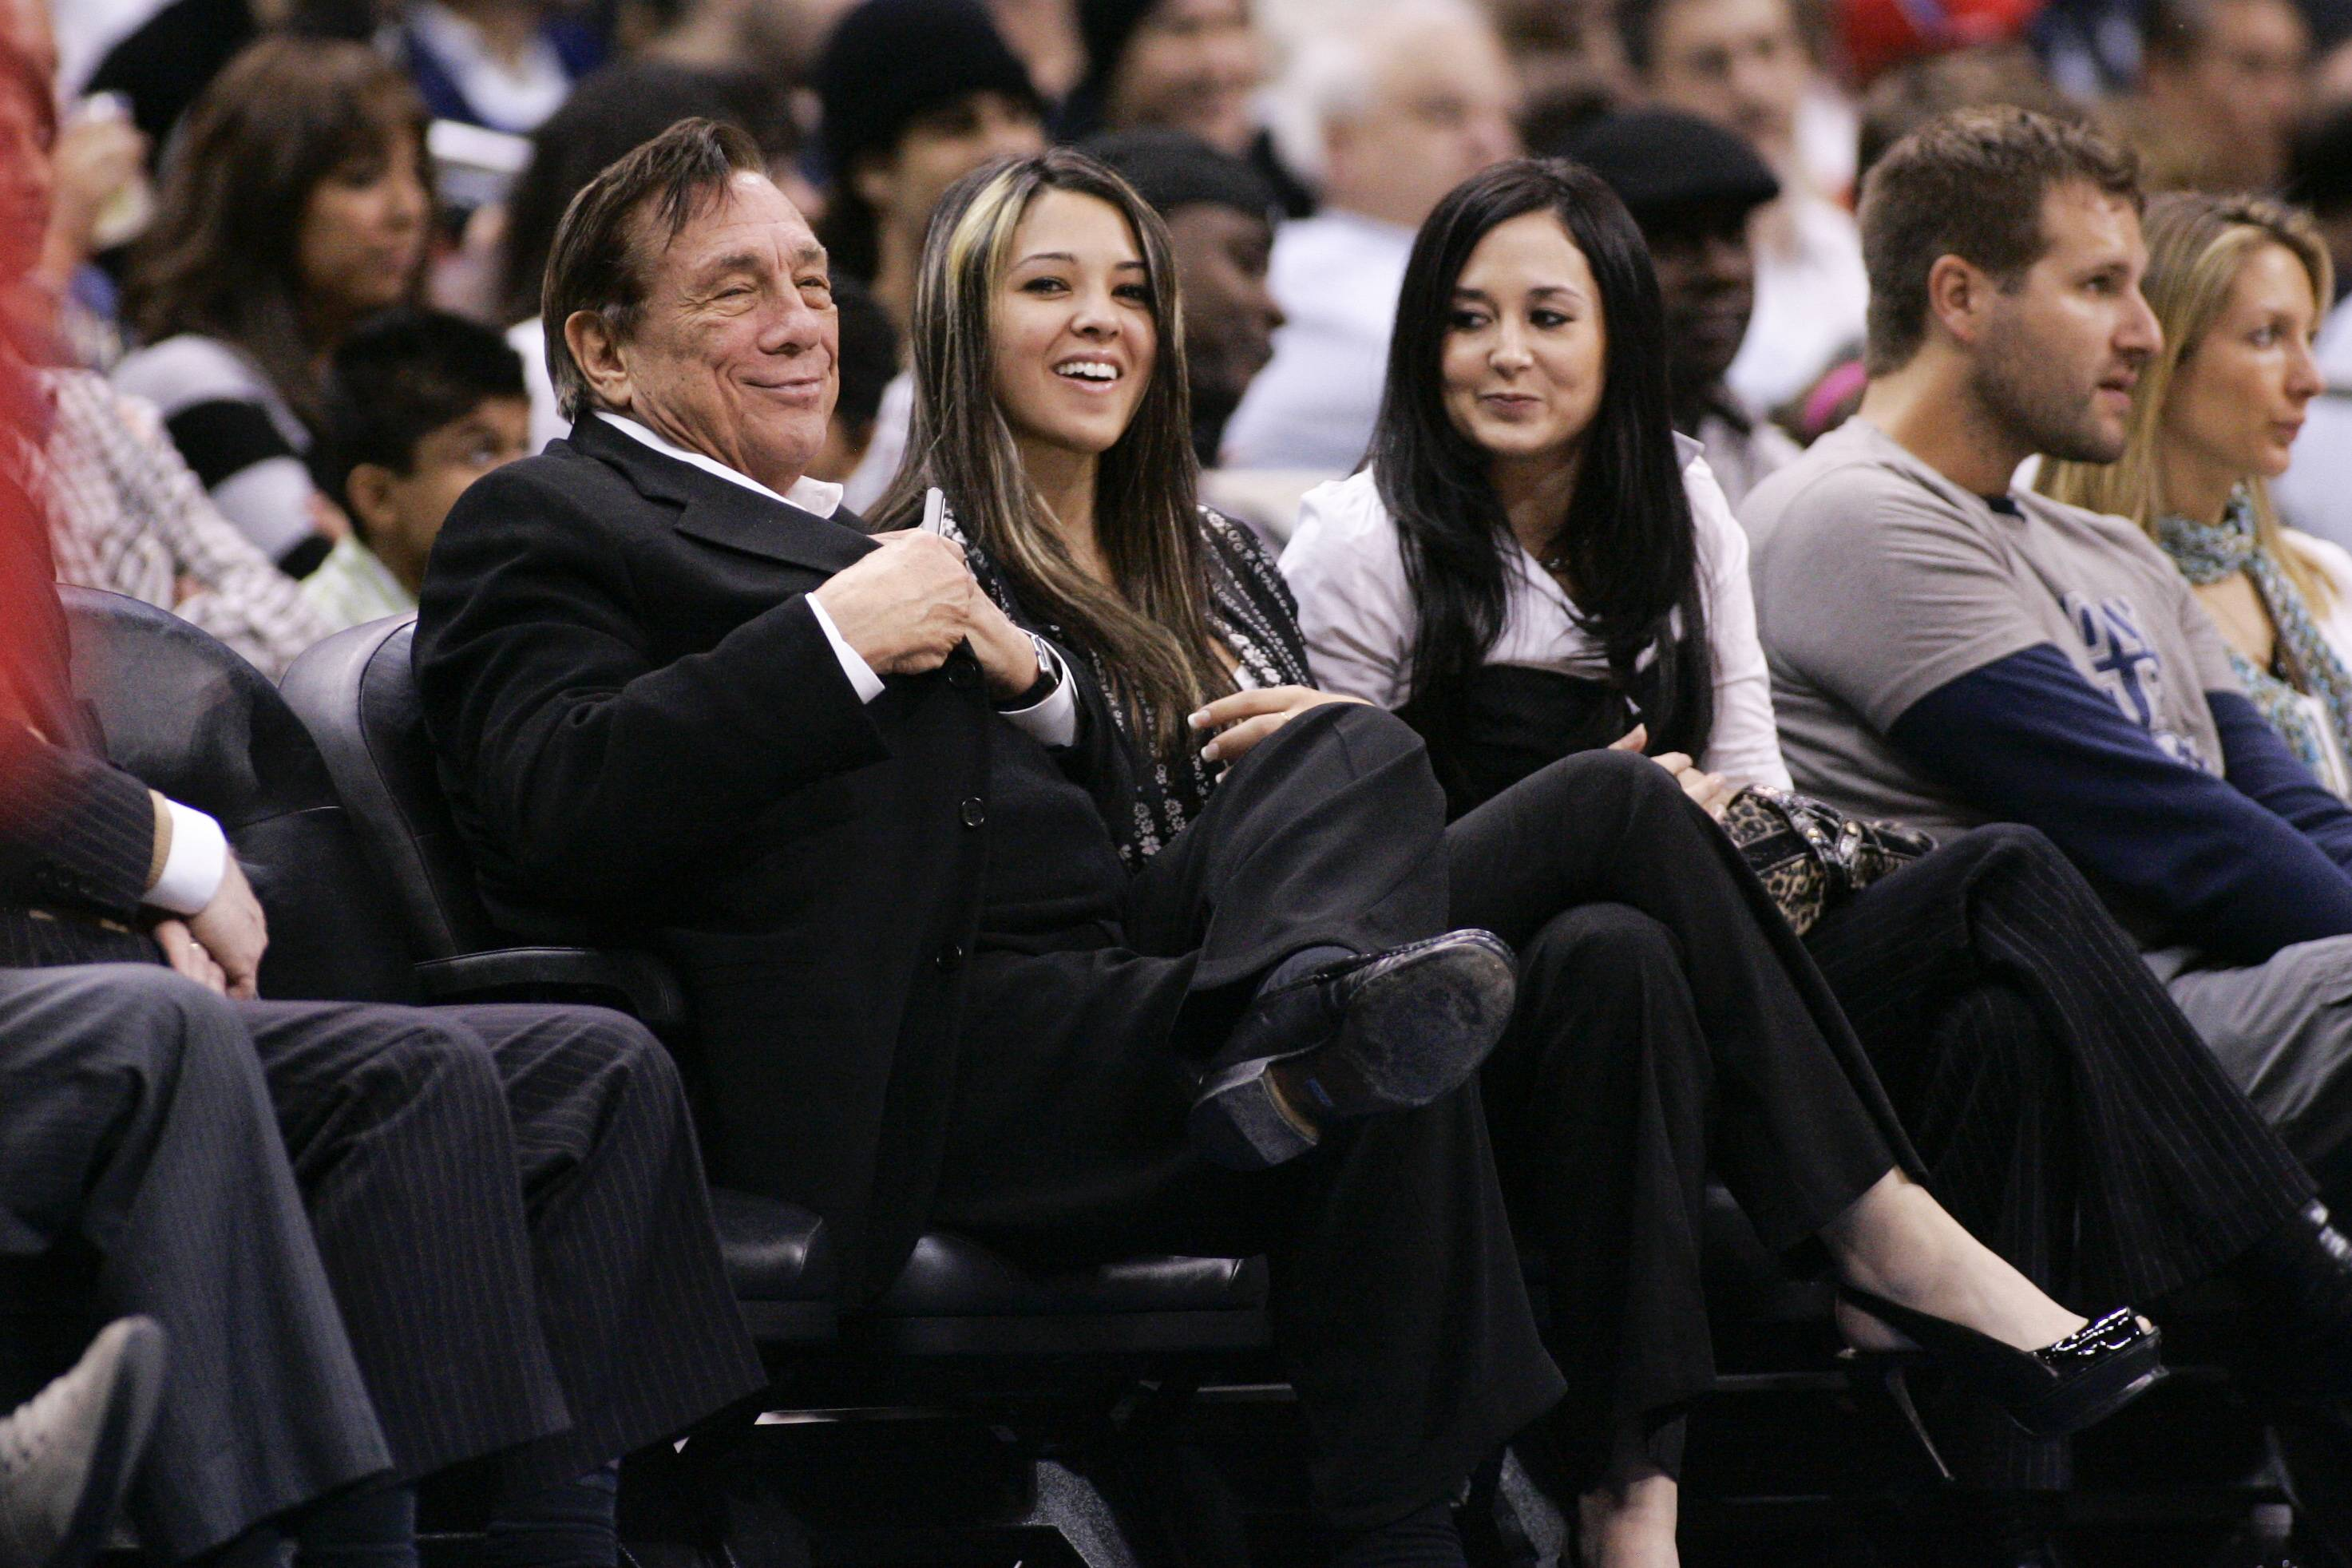 Los Angeles Clippers owner Donald Sterling attends the NBA basketball game between the San Antonio Spurs and Los Angeles Clippers in Los Angeles on Monday, March 2, 2009.